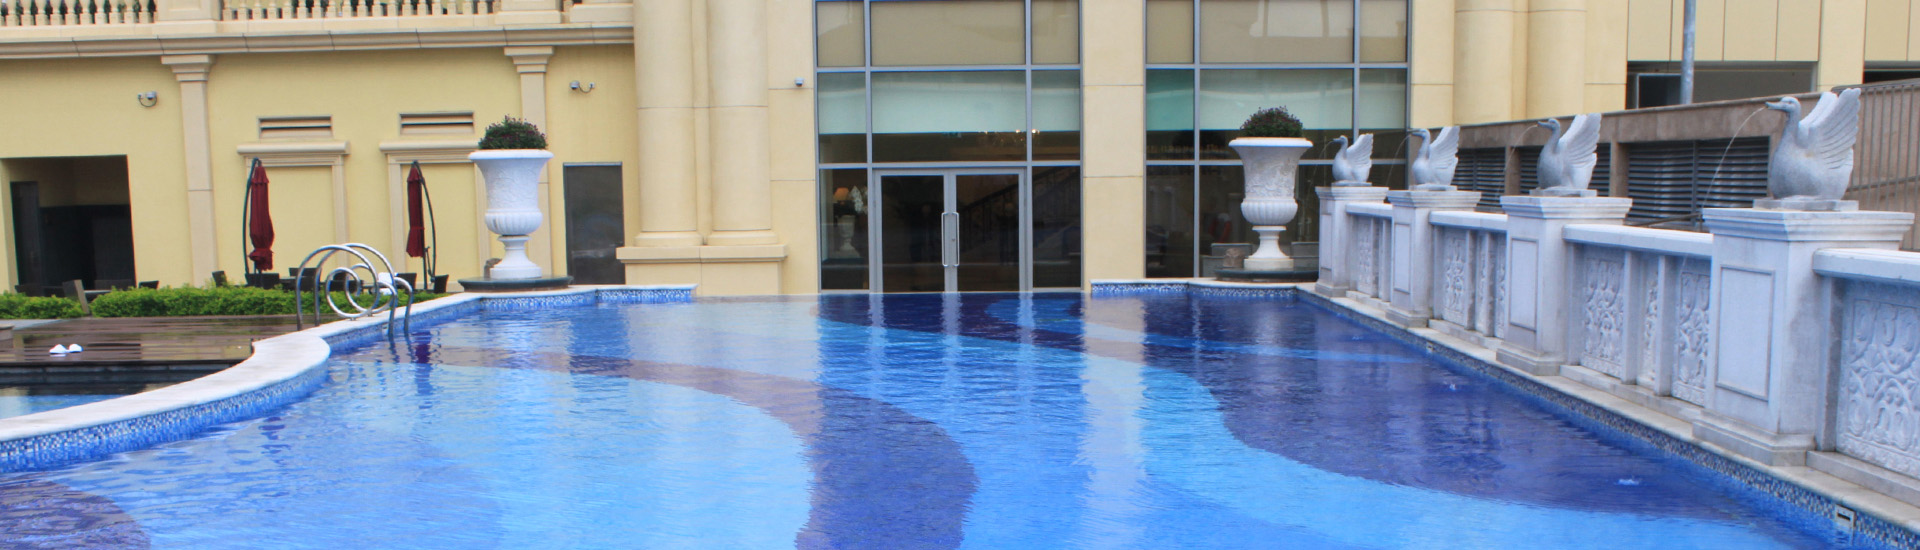 Hotel Facilities Swimming Pool Banner